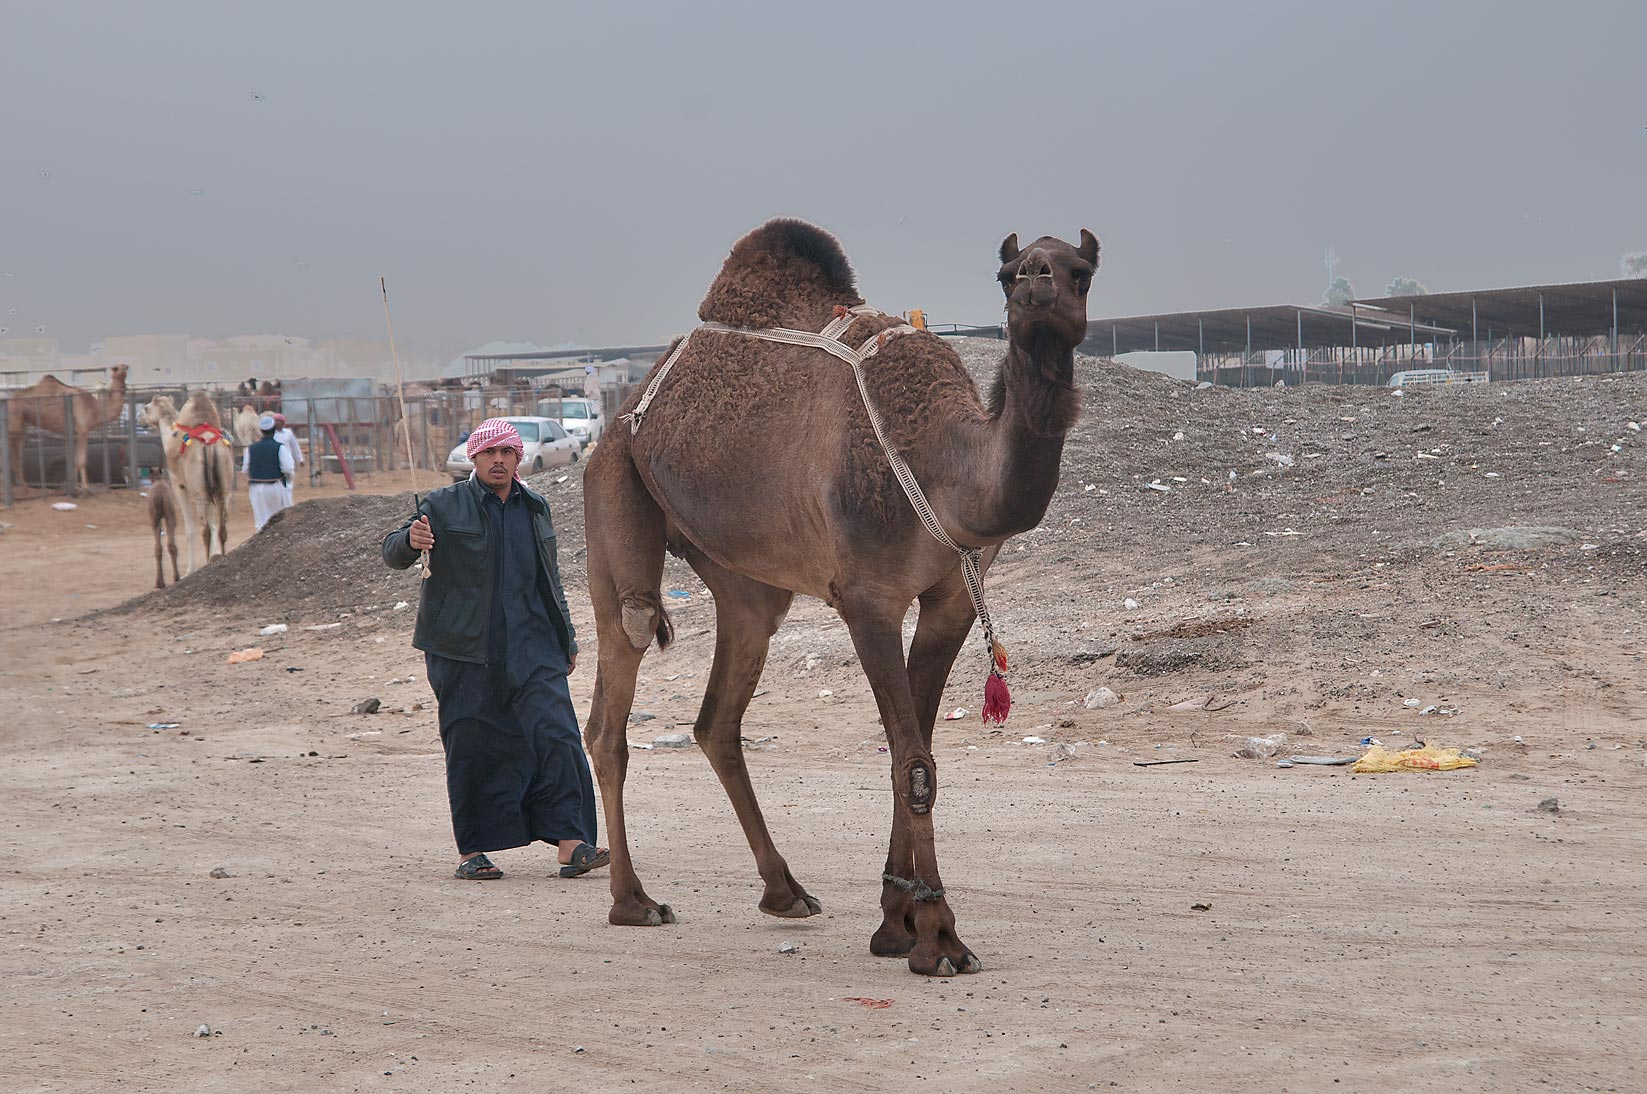 A man with a camel in Camel Market (Souq). Doha, Qatar